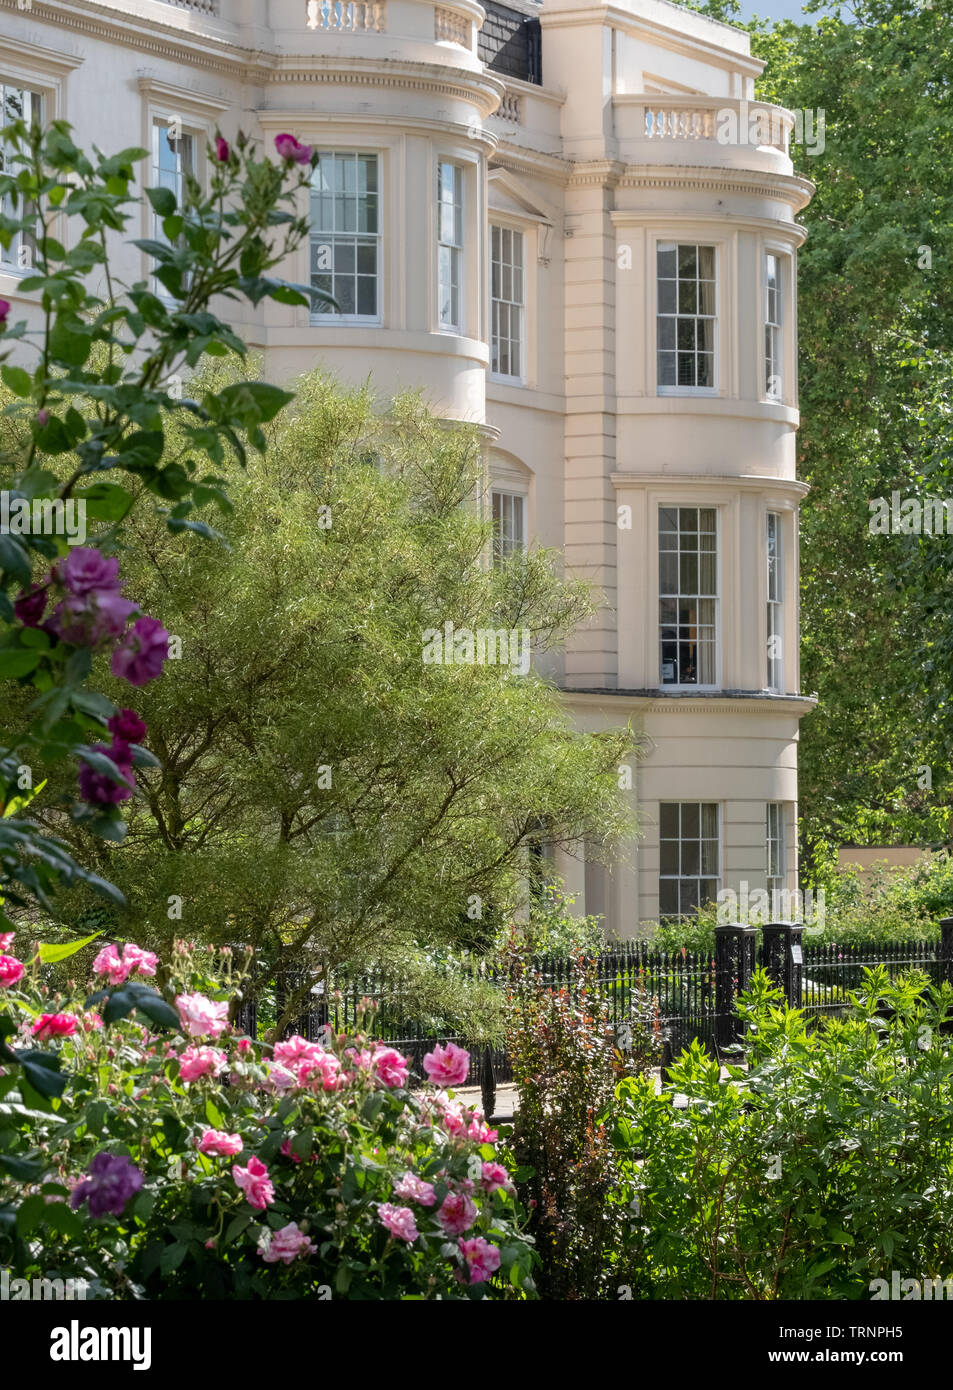 Close up of pink / purple flowers with medicinal properties in the garden at the Royal College of Physicians, London UK. - Stock Image